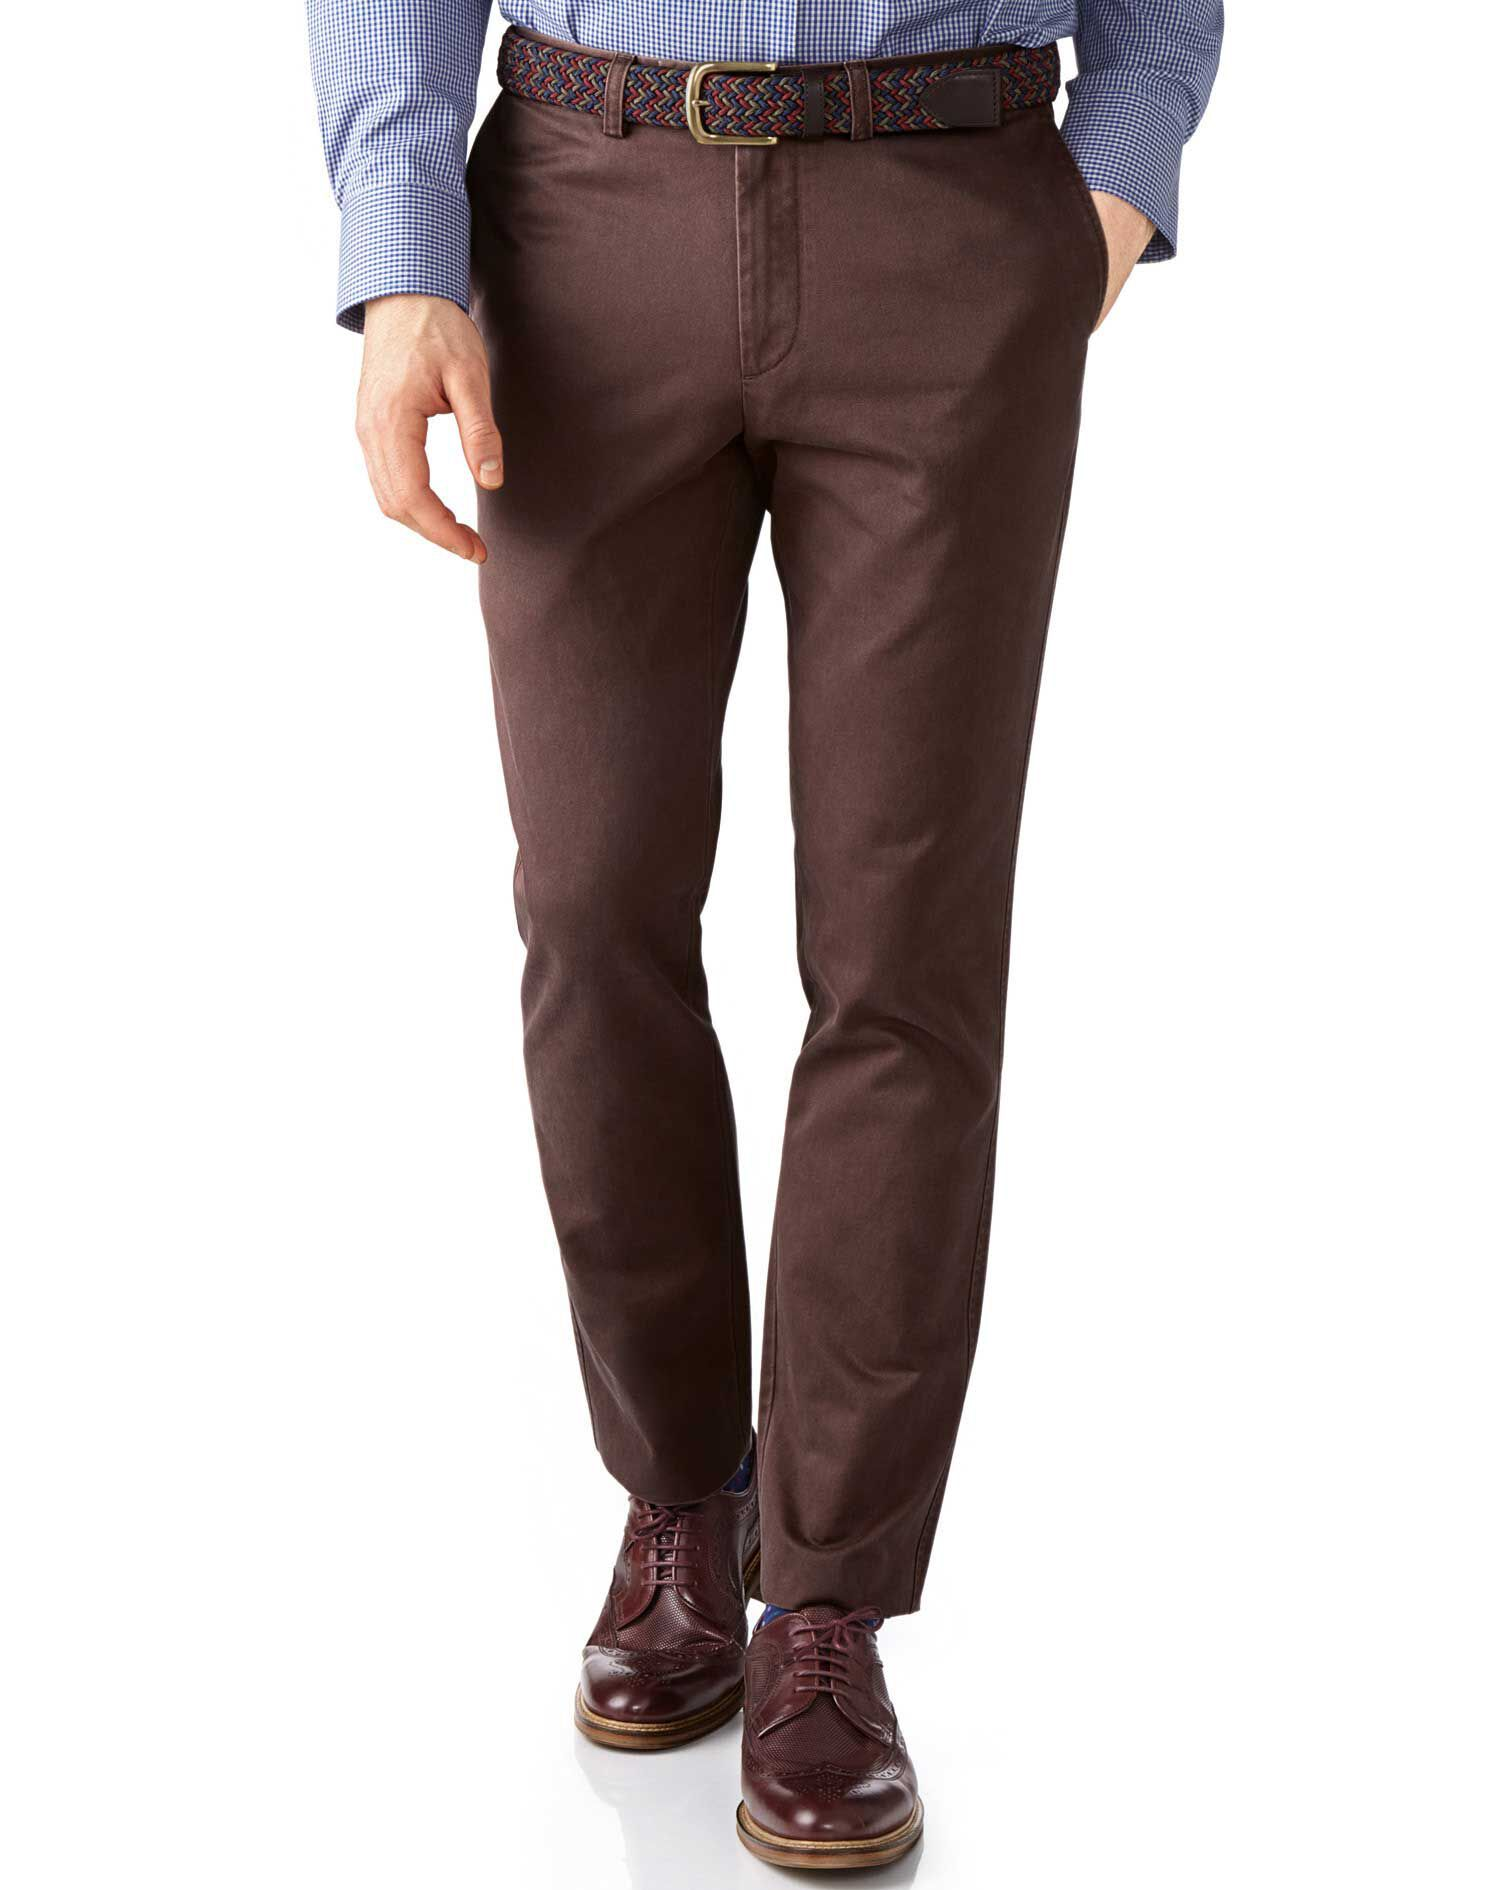 Brown Extra Slim Fit Flat Front Cotton Chino Trousers Size W38 L29 by Charles Tyrwhitt